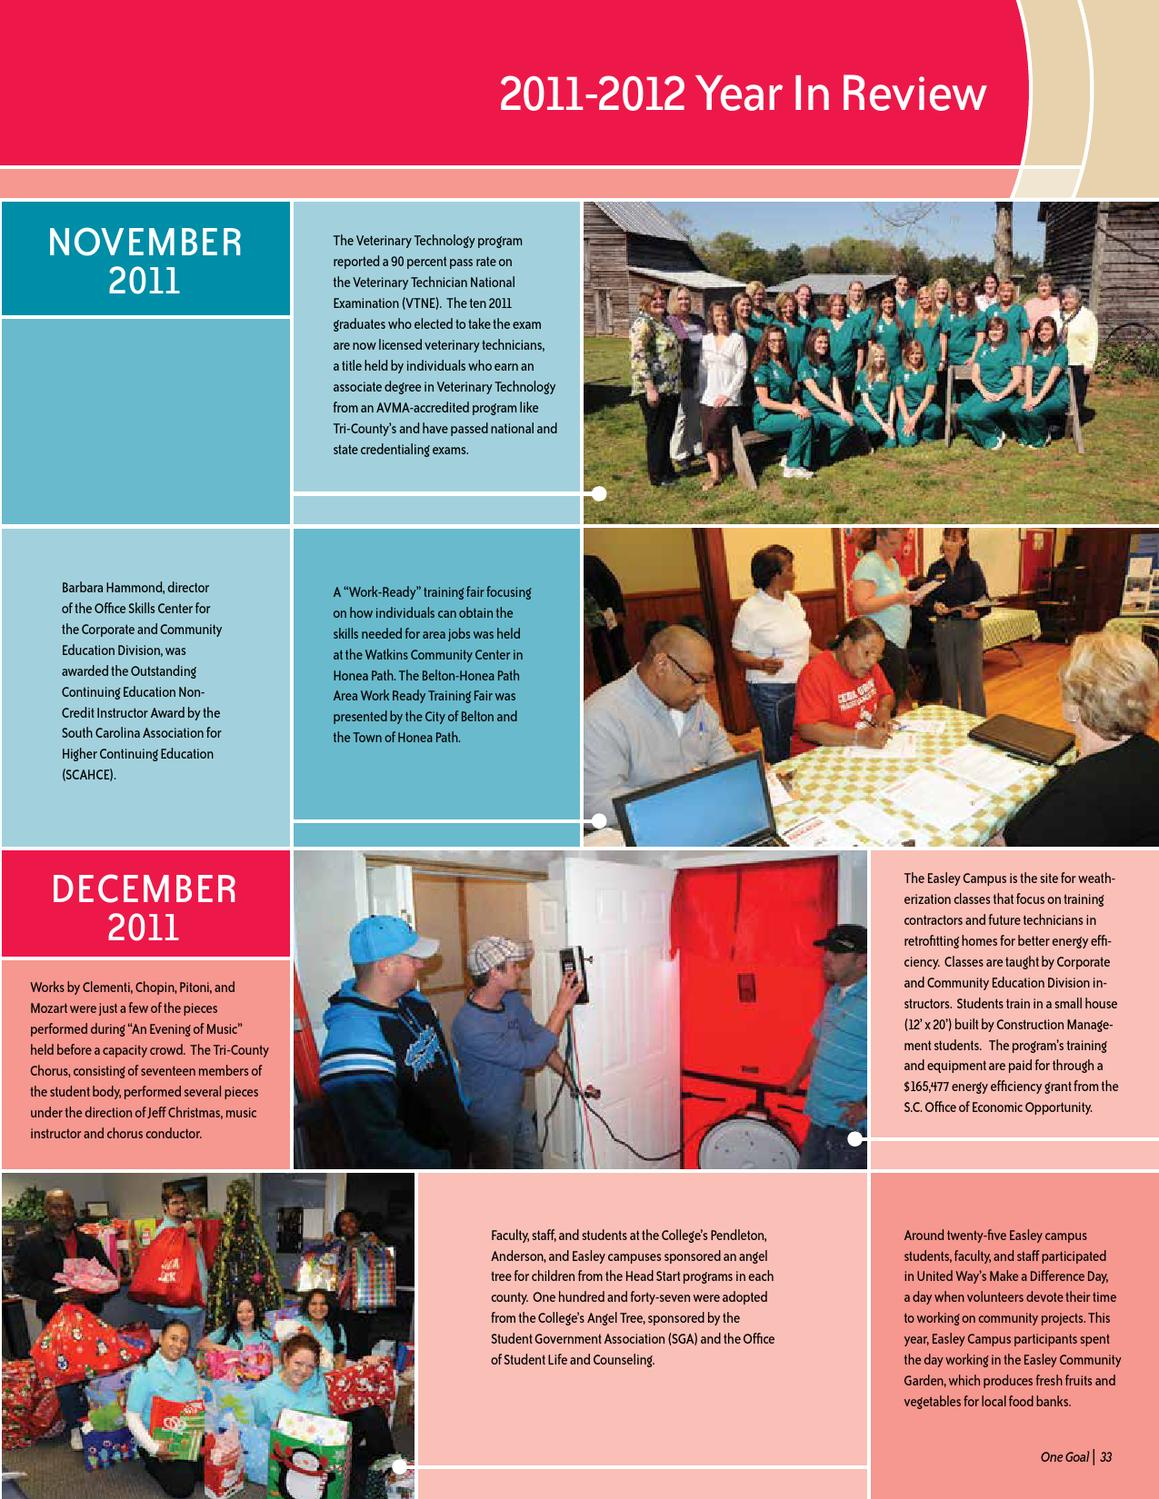 TCTC Annual Report 2011-2012 by Gayle Arries - issuu